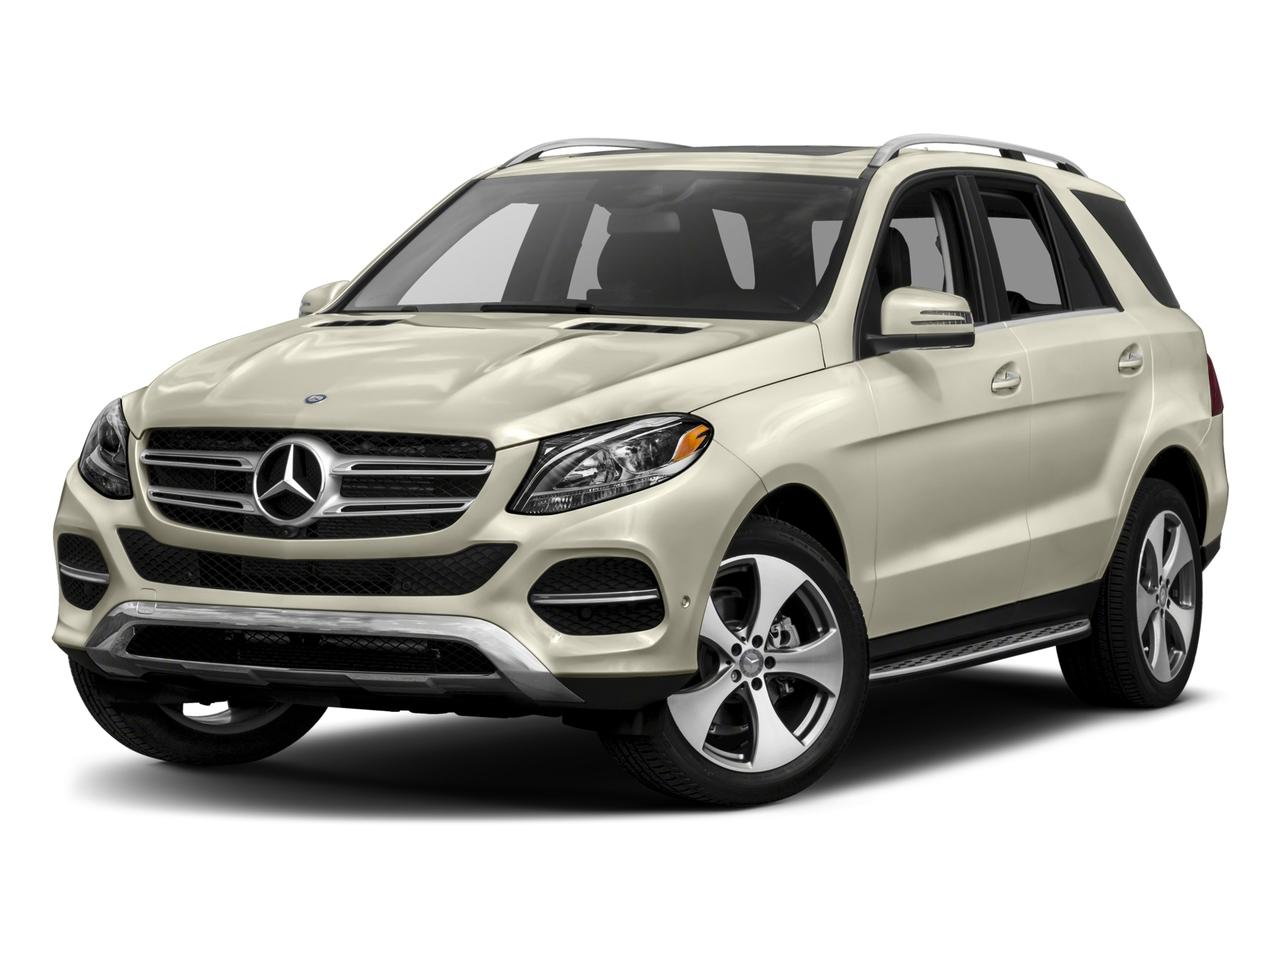 2017 Mercedes-Benz GLE Vehicle Photo in Portland, OR 97225